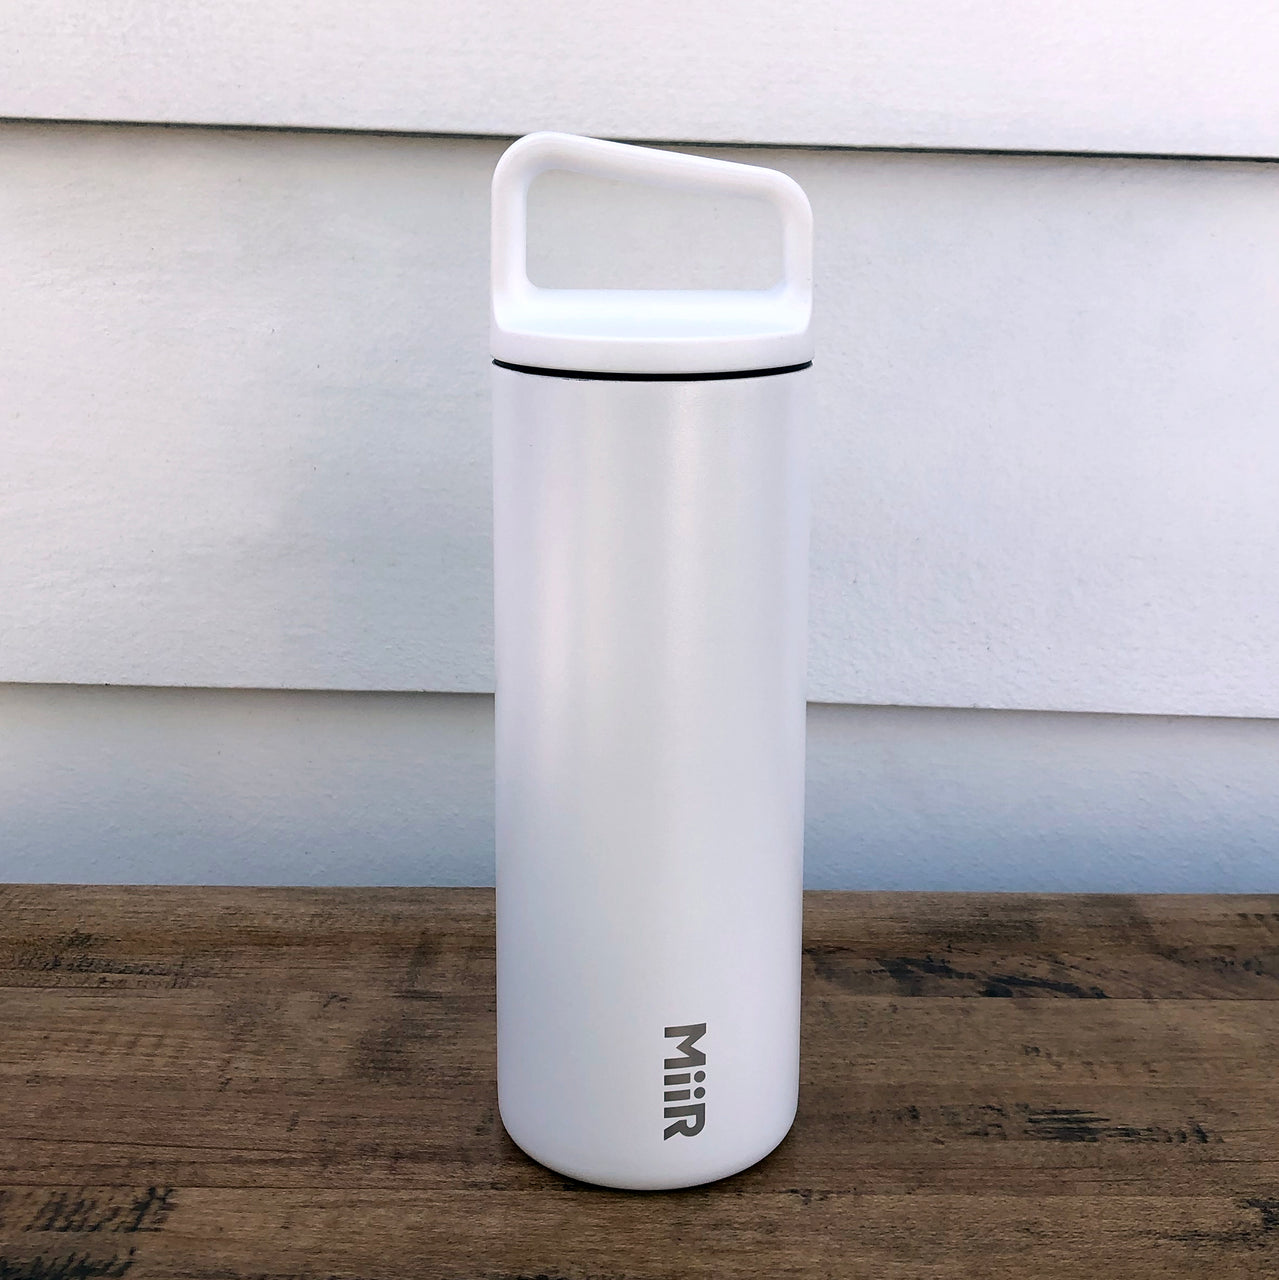 MiiR White 16oz Wide Mouth Water or Hot Drink Bottle